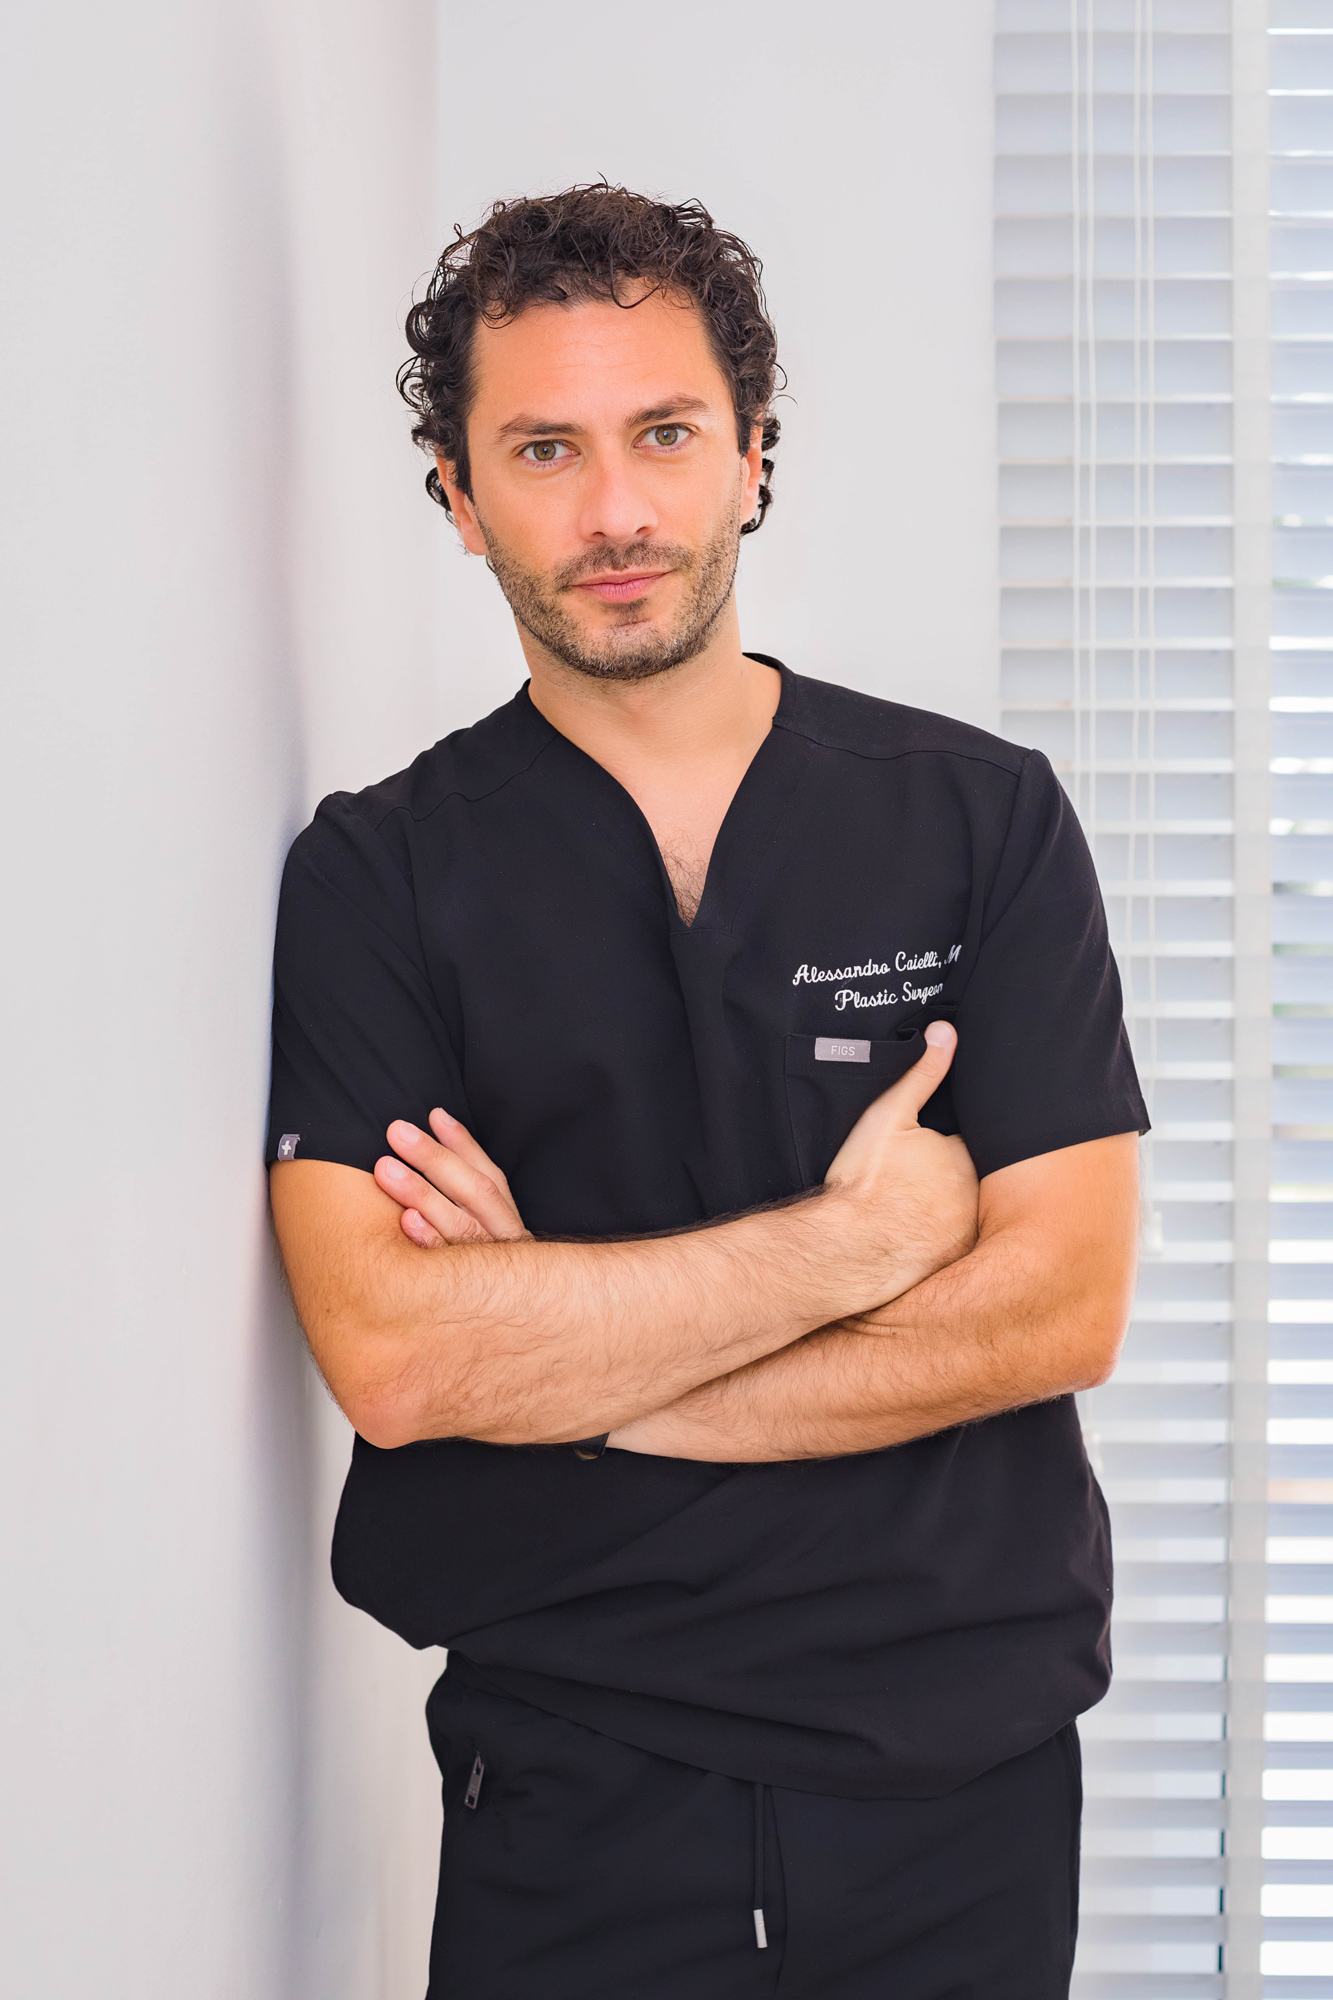 About Dr. Alessandro Caielli